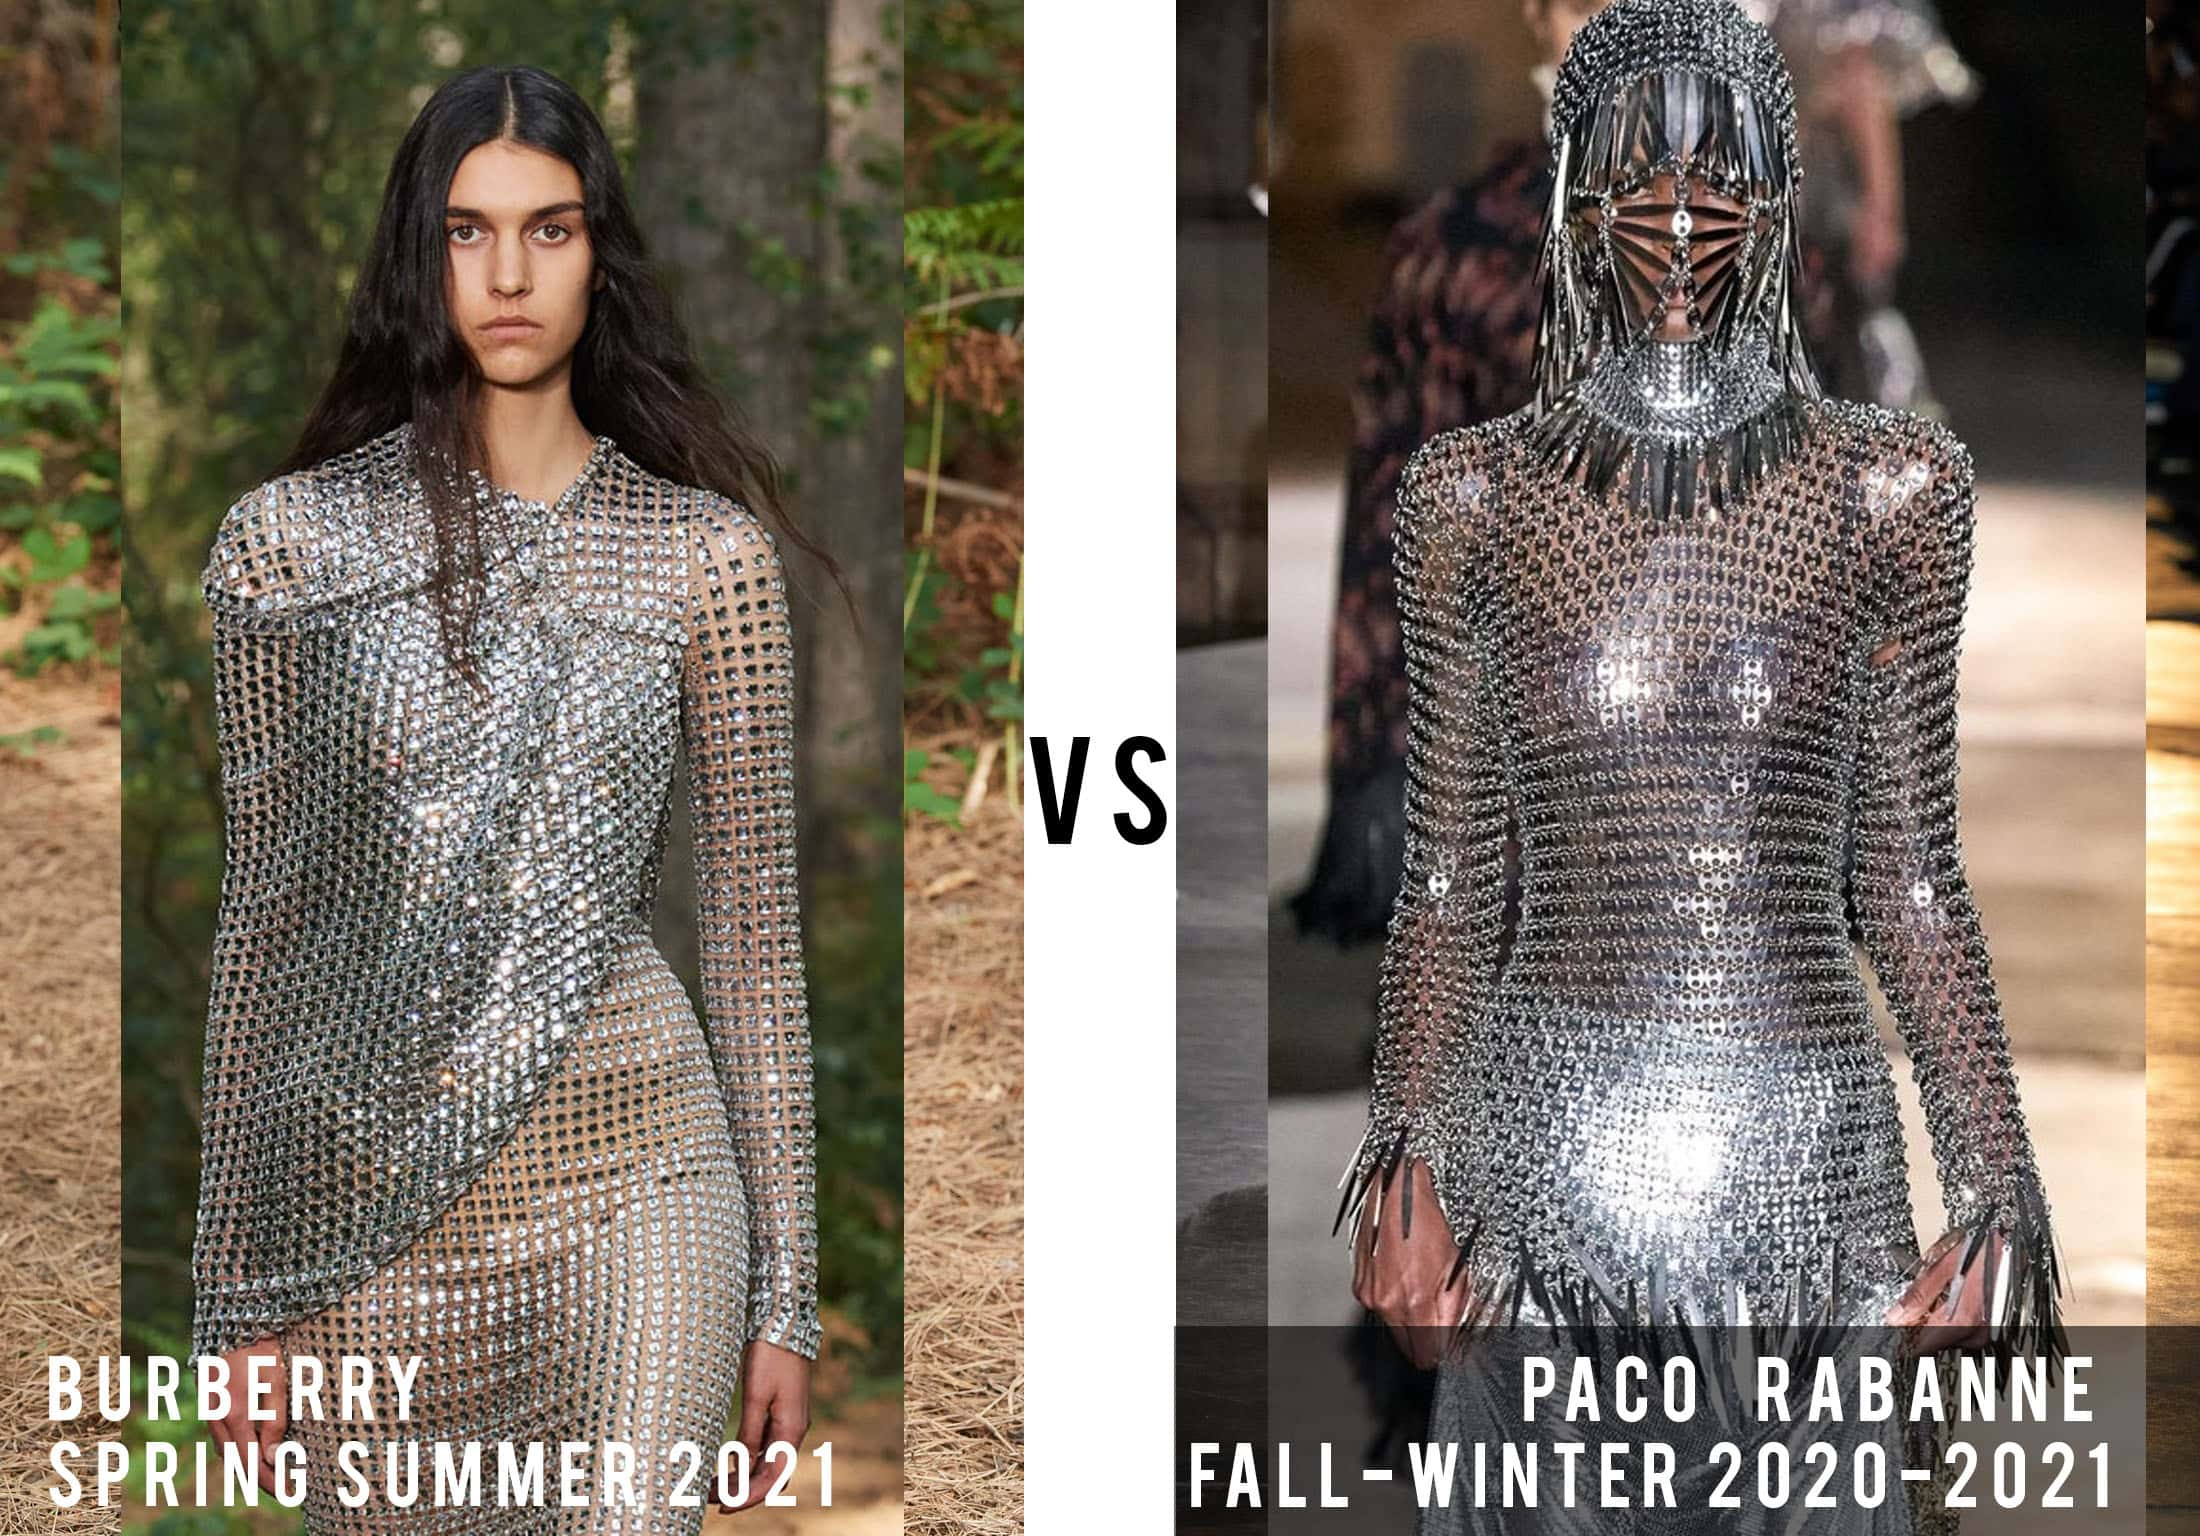 Burberry Spring Summer 2021 vs Paco Rabanne Fall-Winter 2020-2021